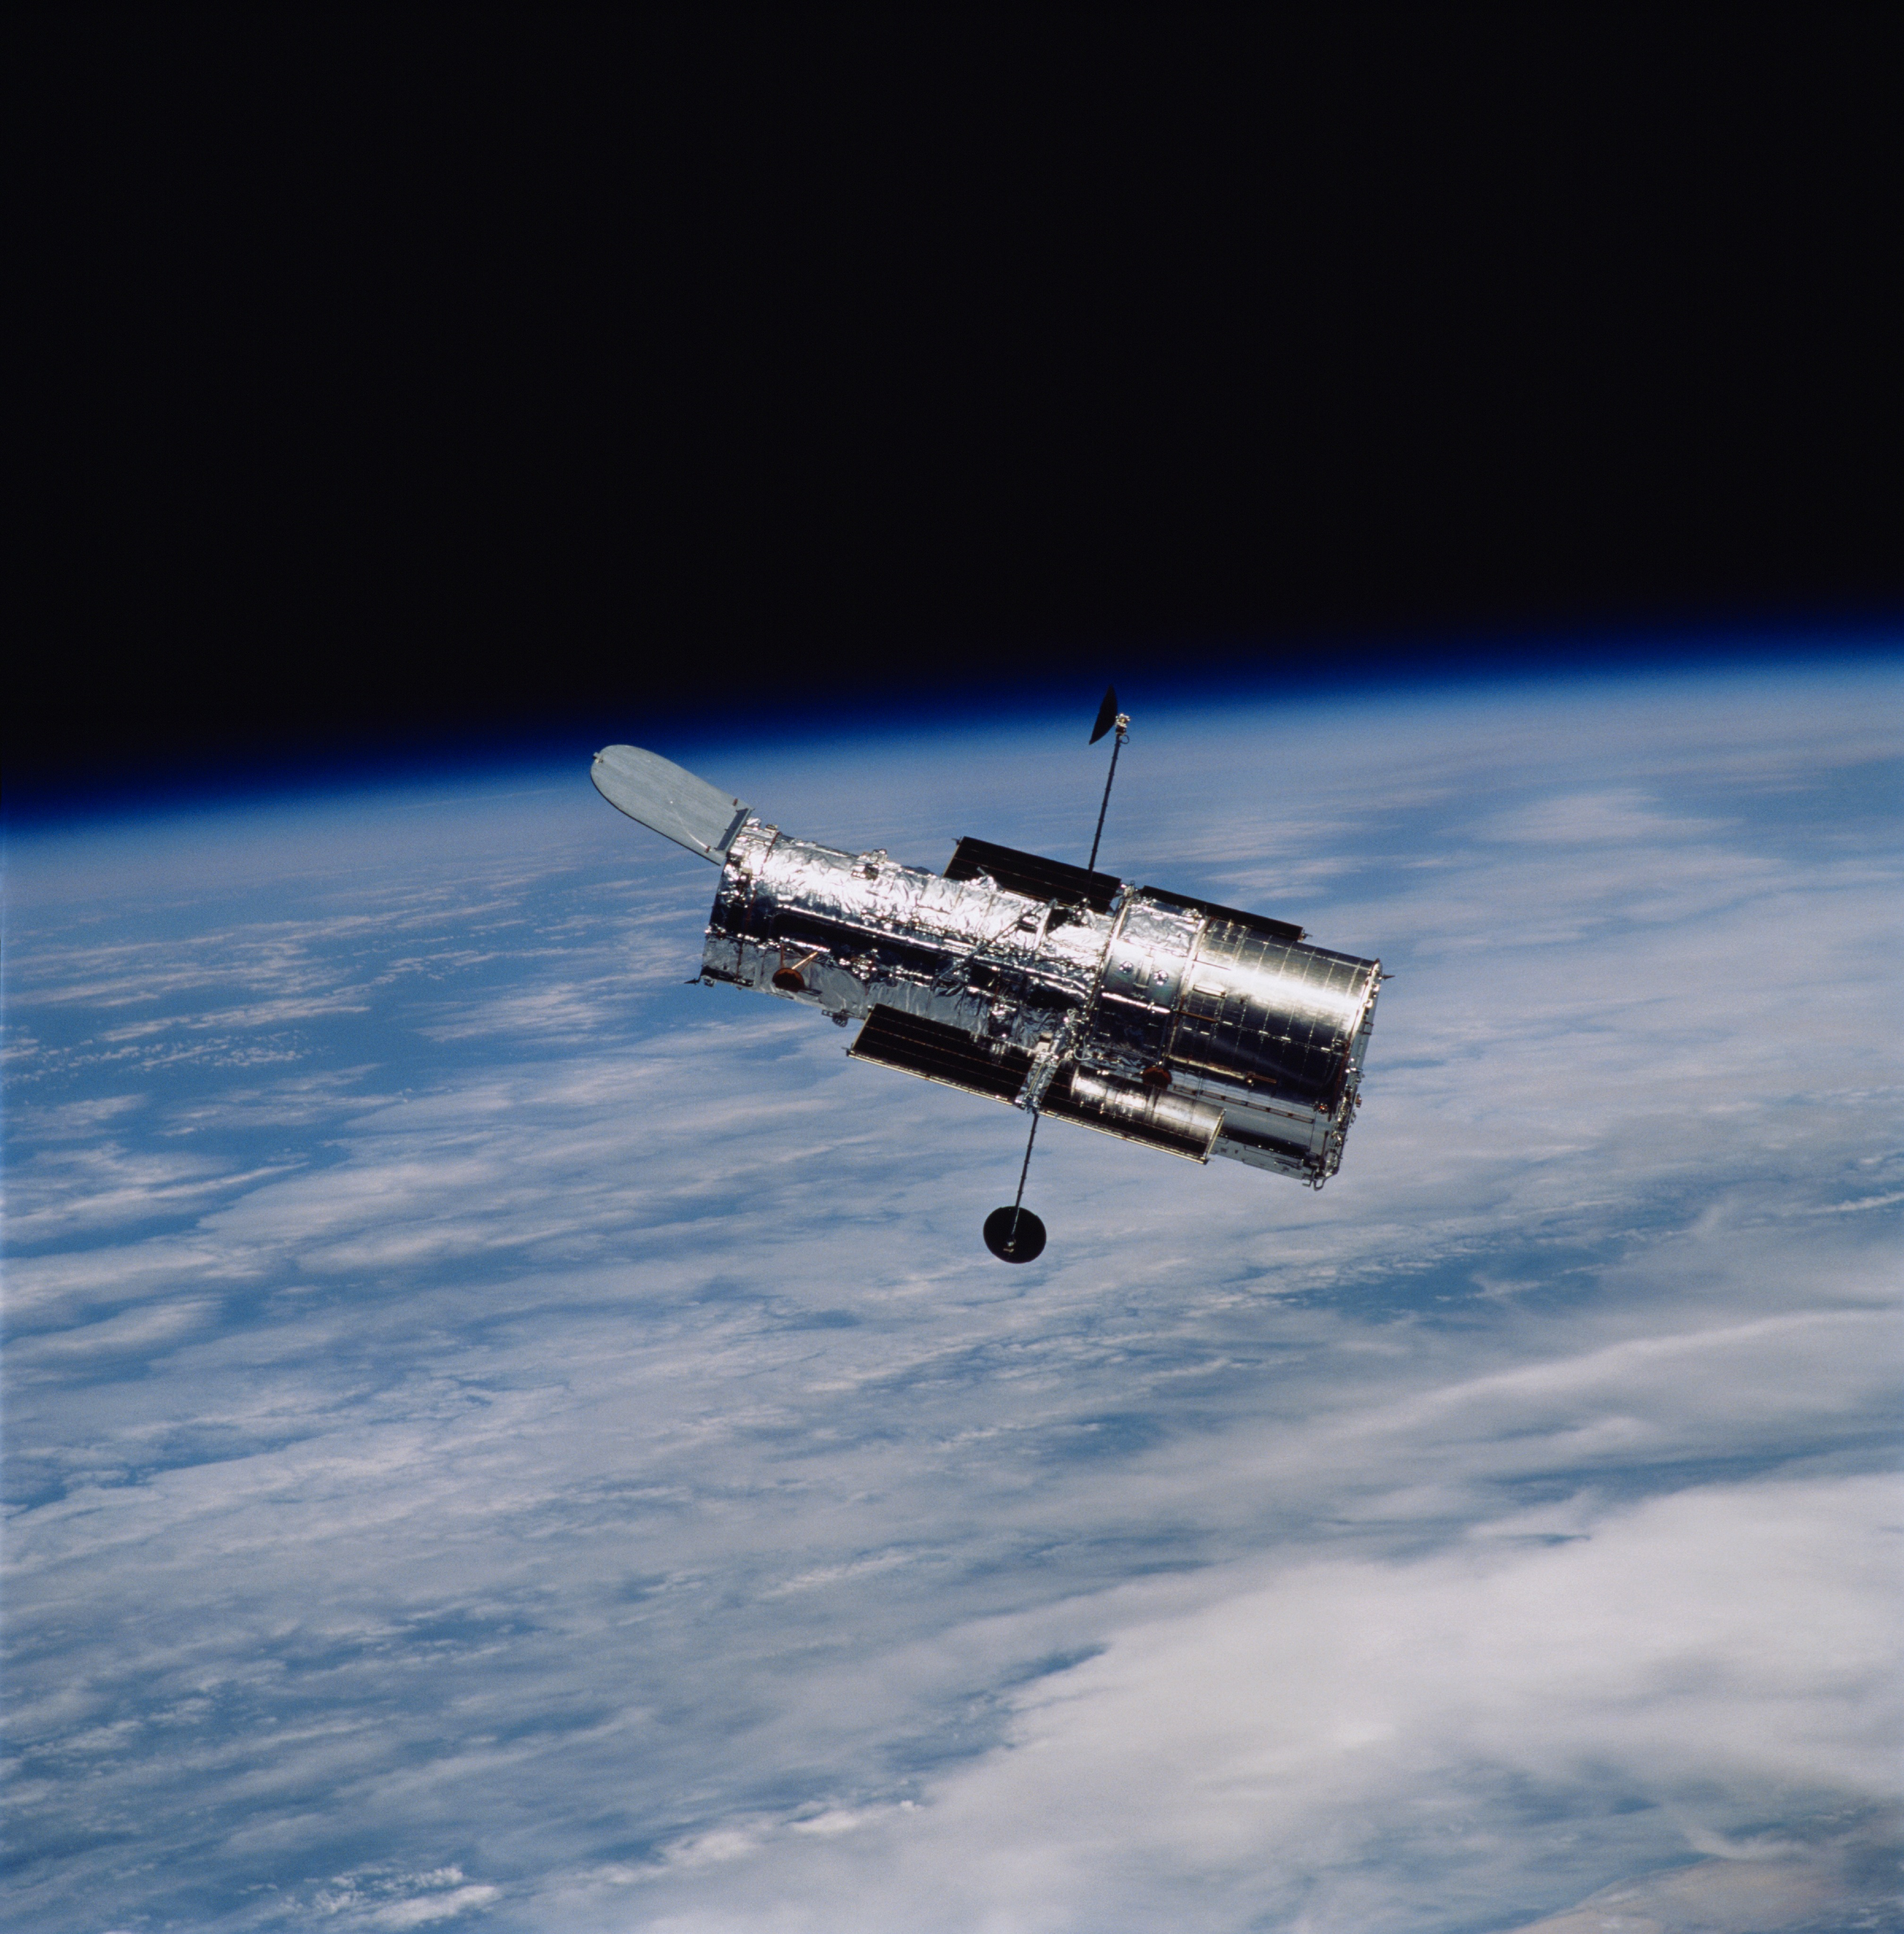 20 years of Hubble: the most spectacular images